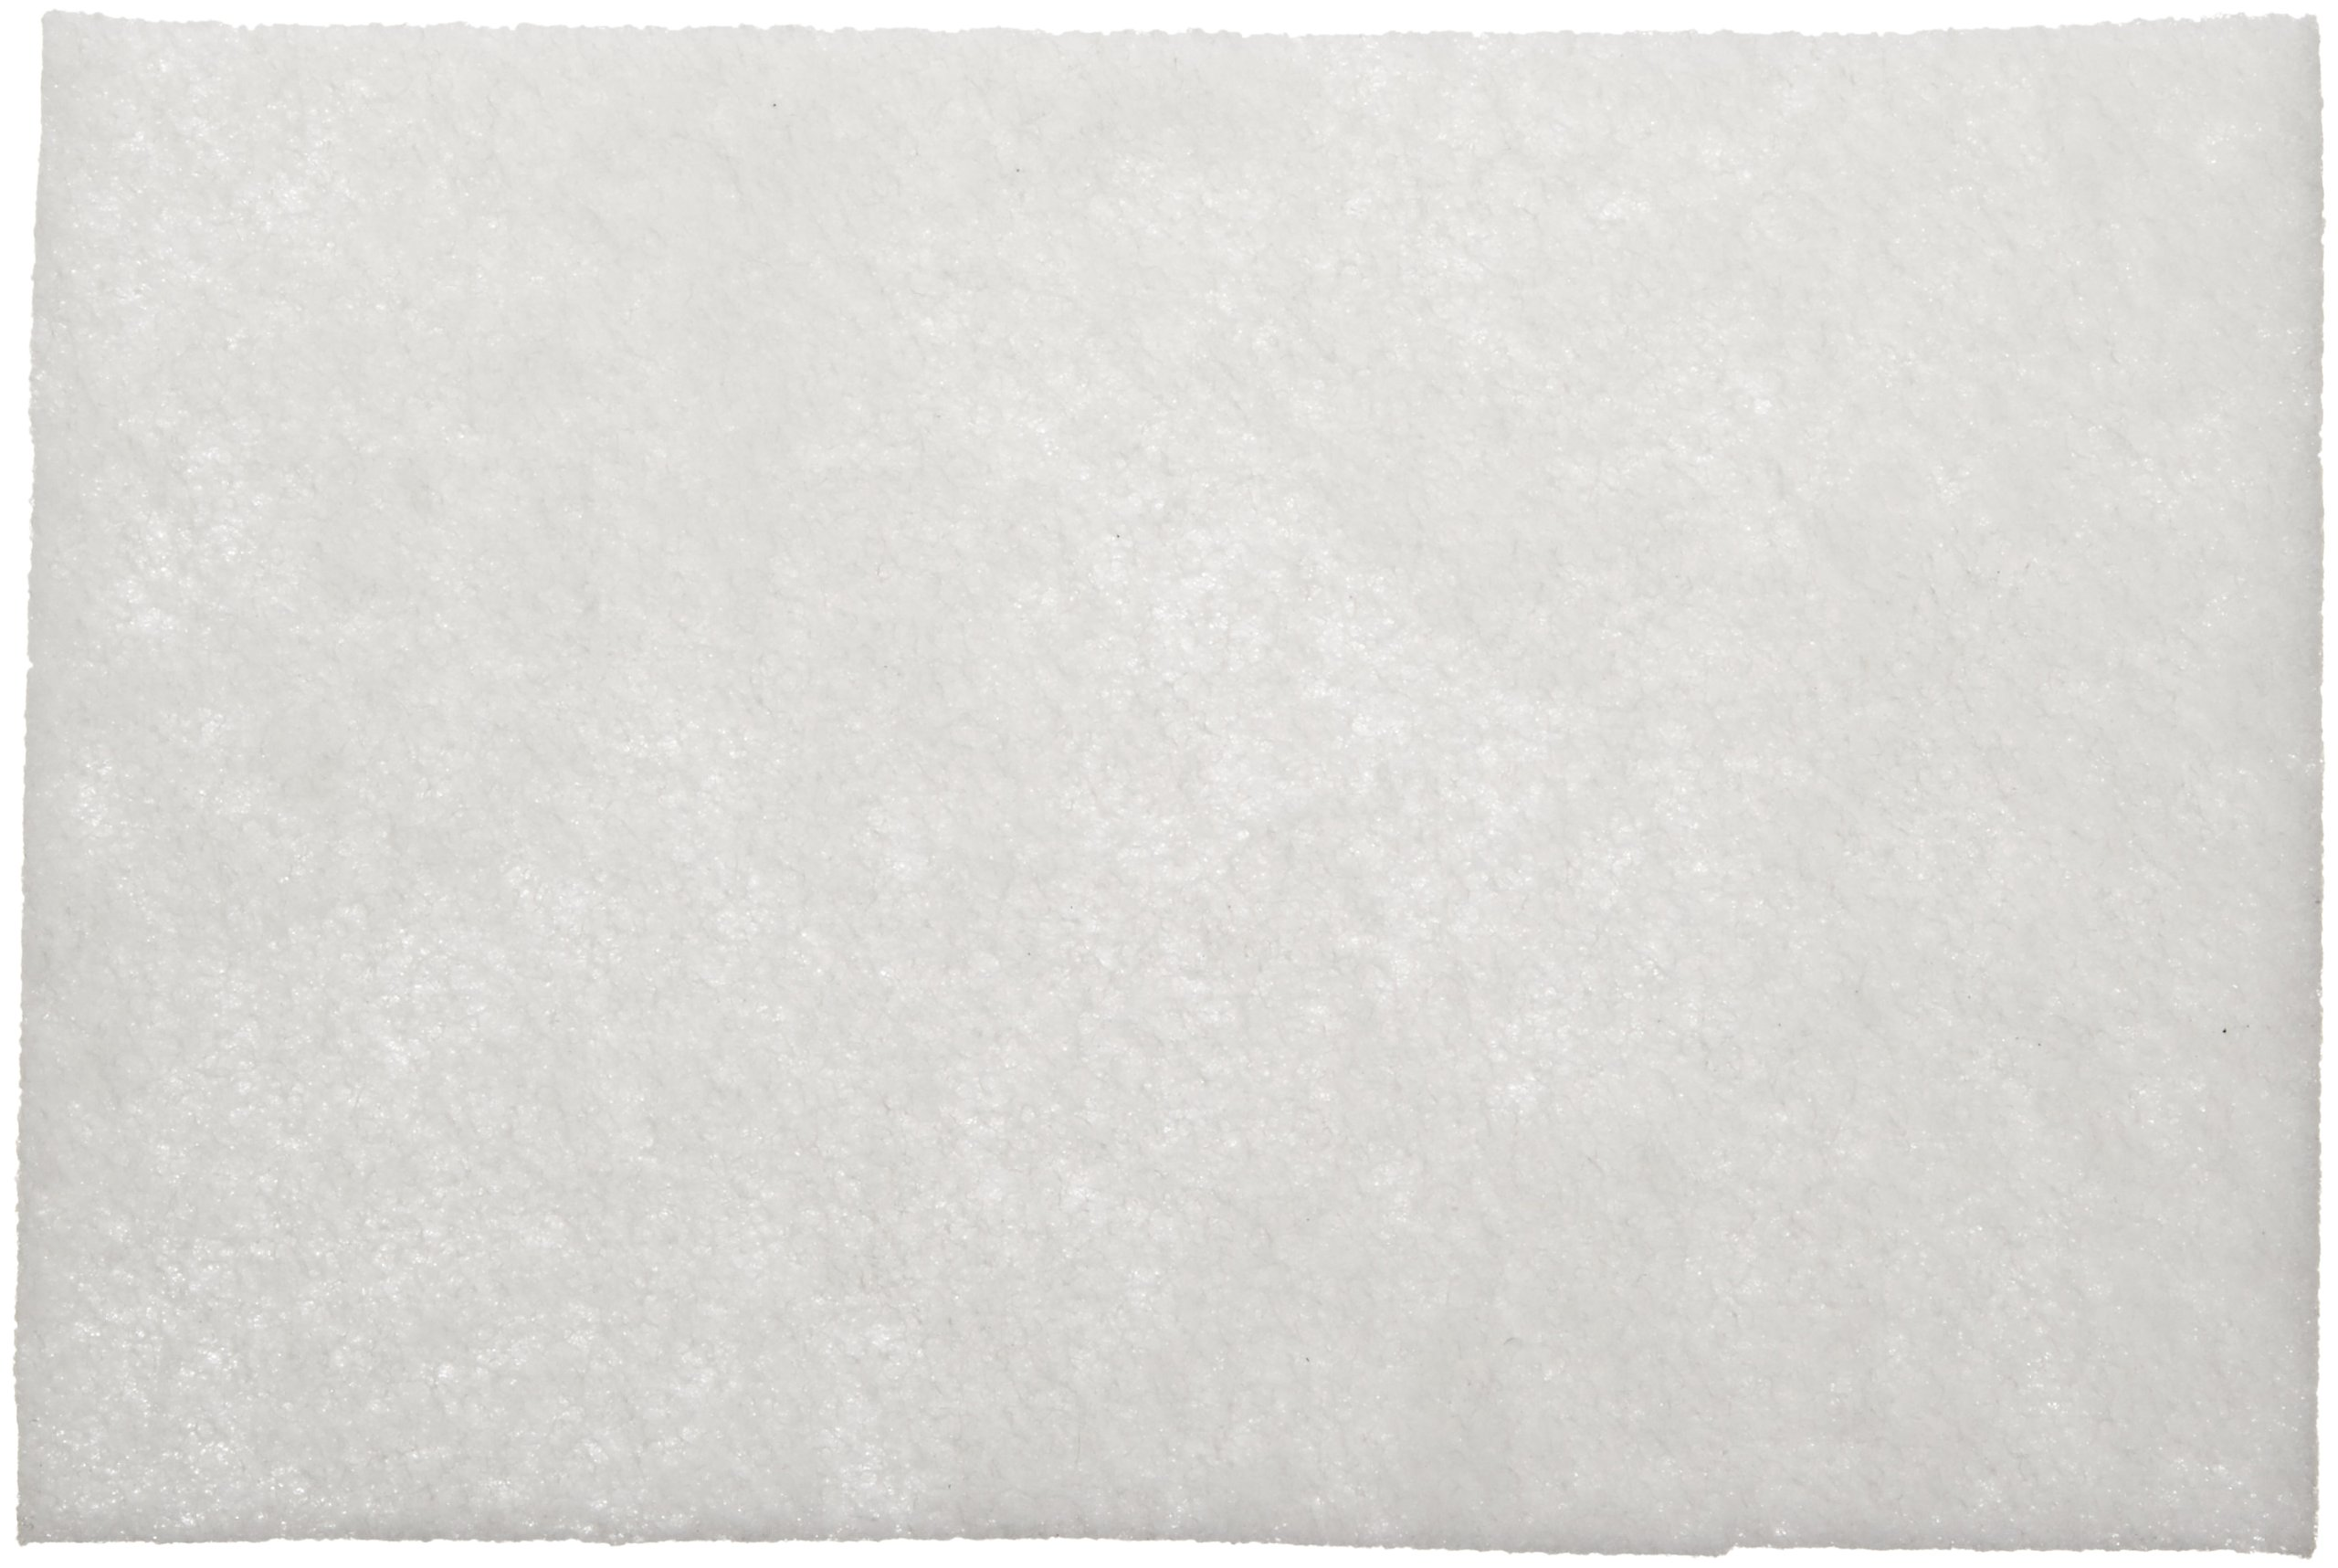 Scotch-Brite(TM) Light Cleansing Hand Pad 07445, Aluminum Silicate, 9'' Length x 6'' Width, White  (Pack of 20)